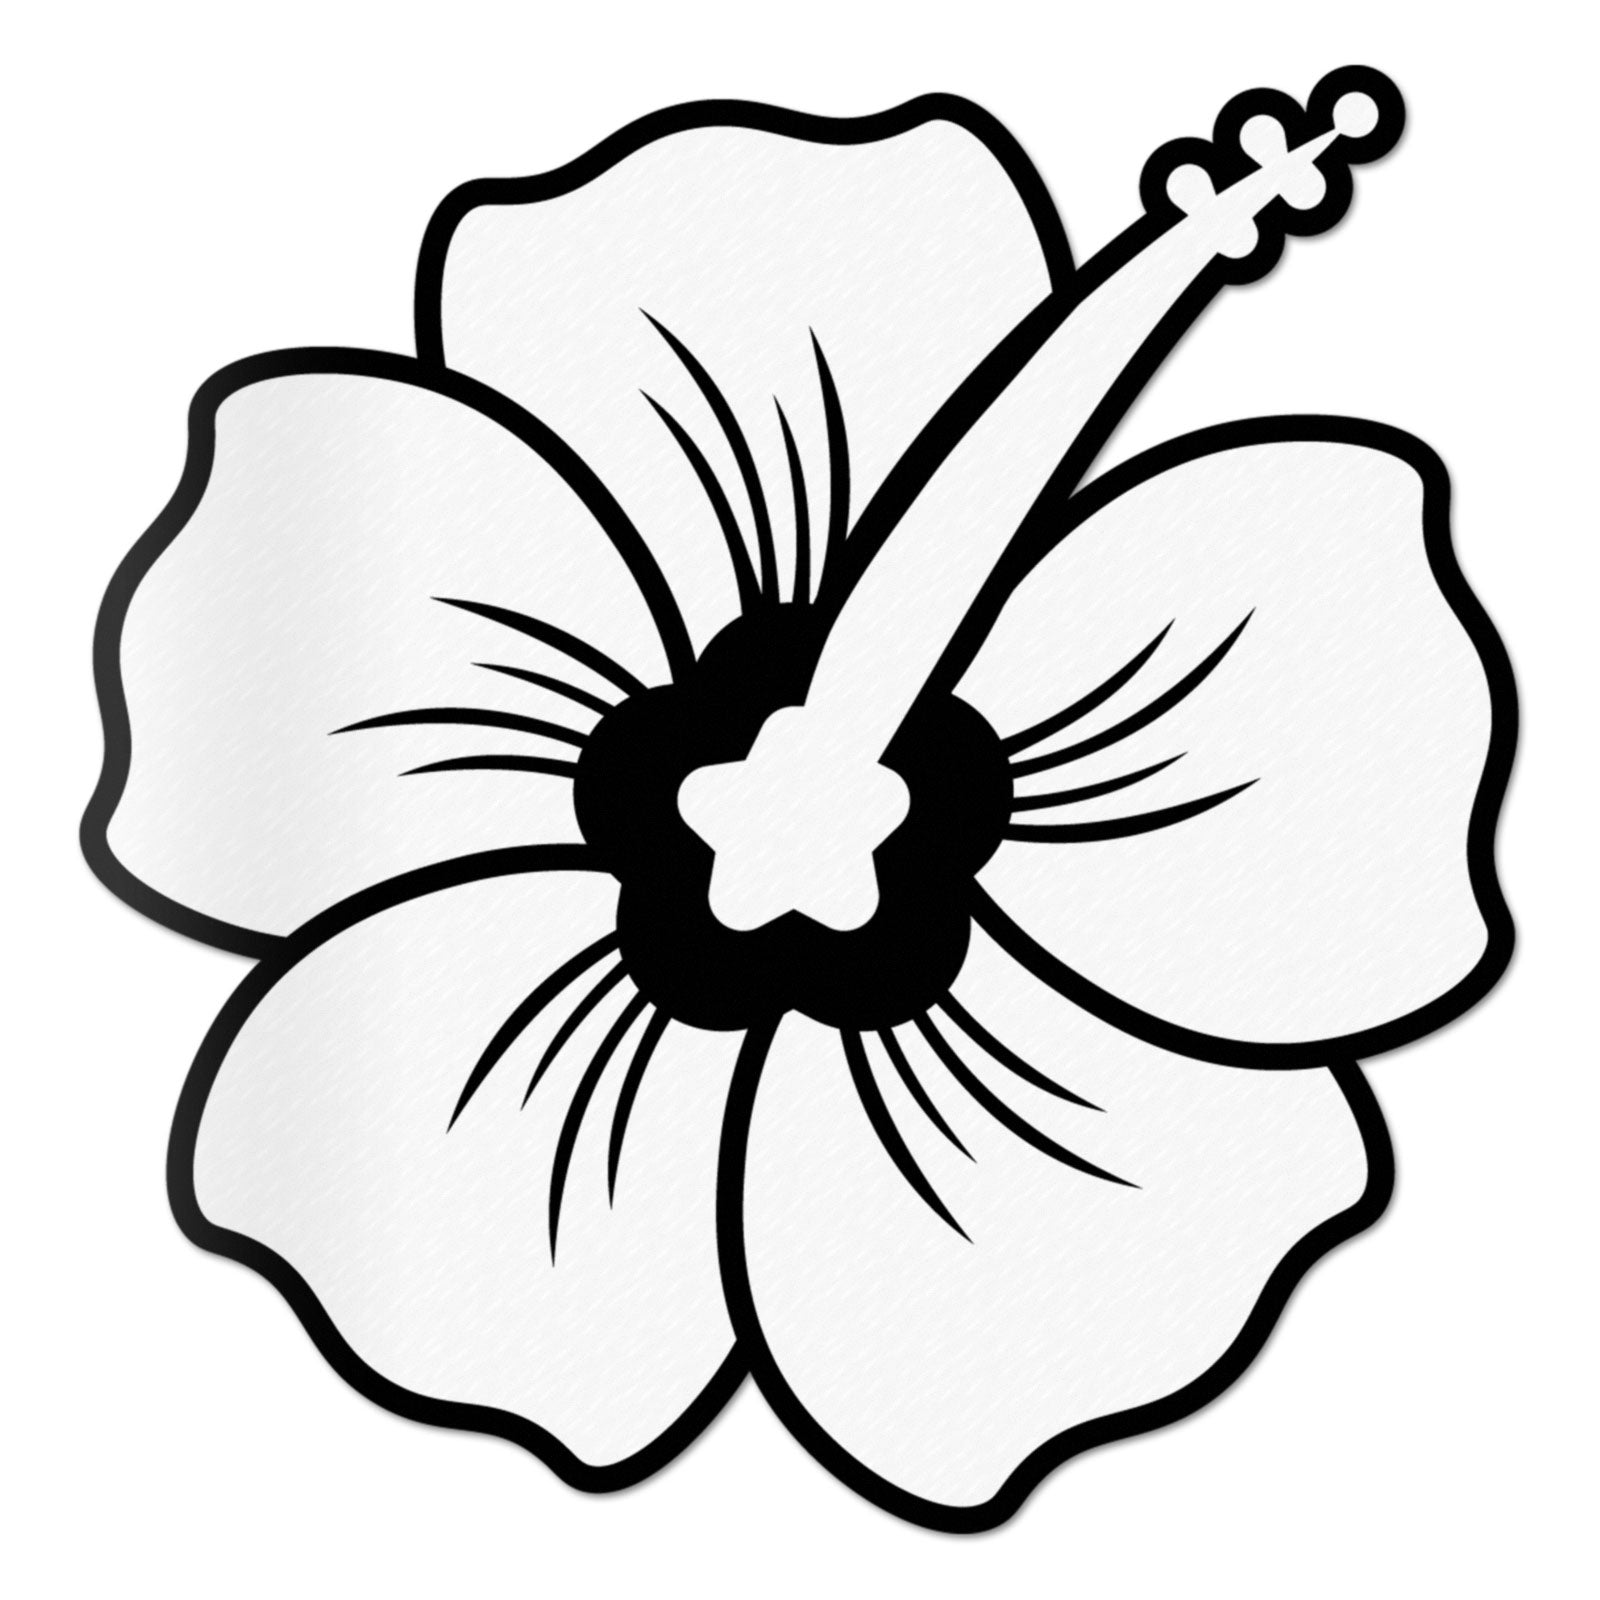 Hibiscus Decal White Sticker Vinyl Rear Window Car Truck Large Flower Wall Water and Fade Resistant 6 Inches